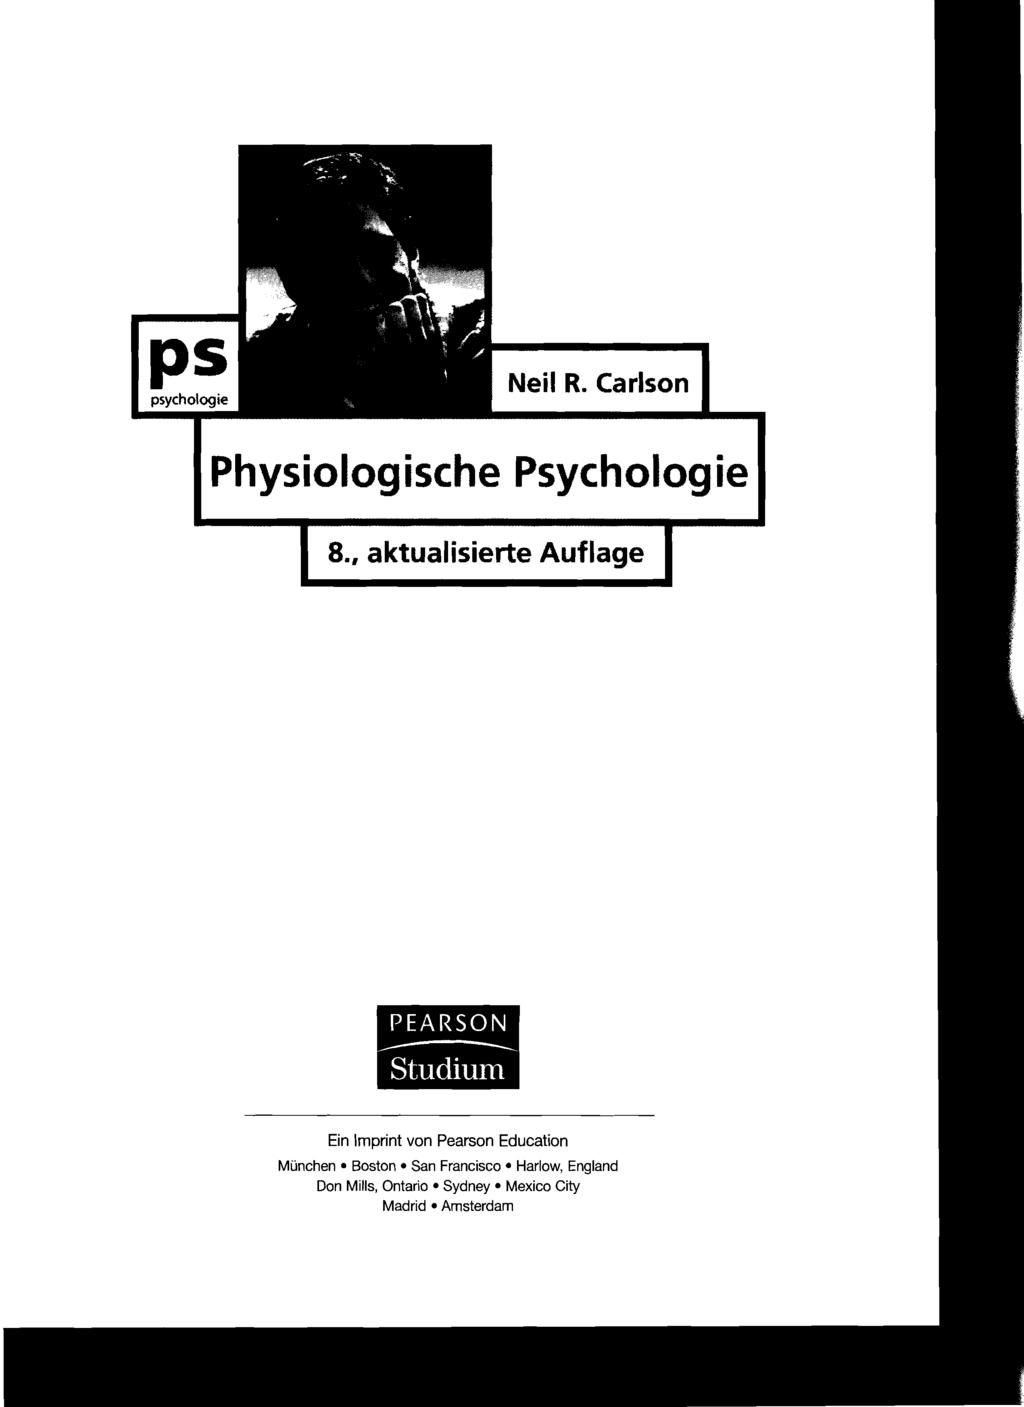 Physiologische Psychologie - PDF